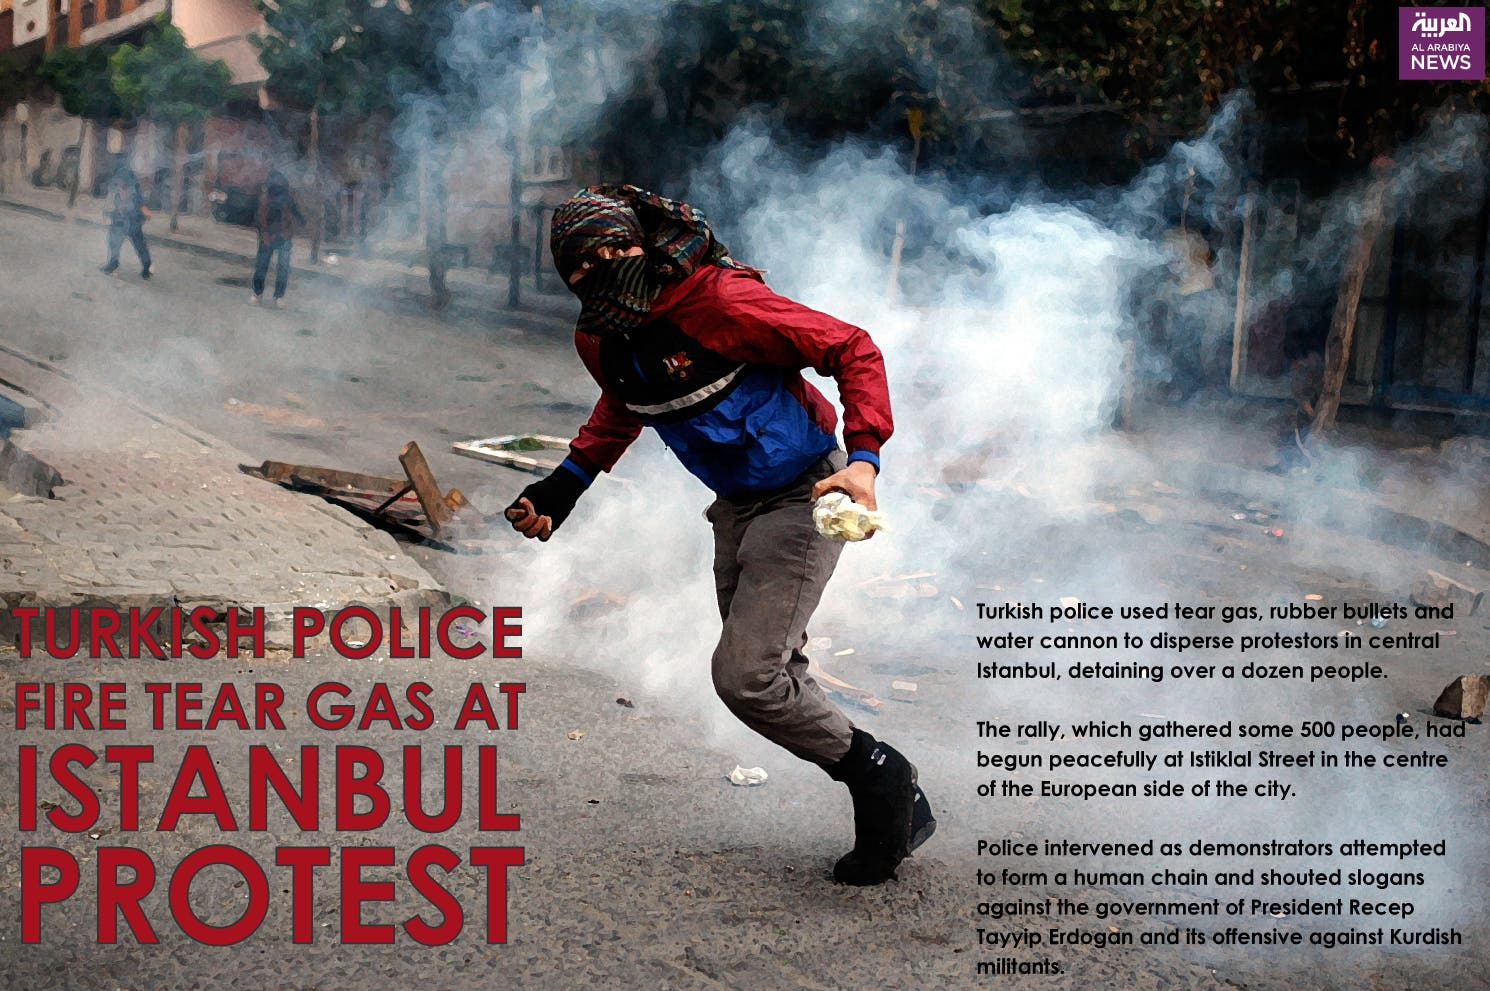 Infographic: Turkish police fire tear gas at Istanbul protest